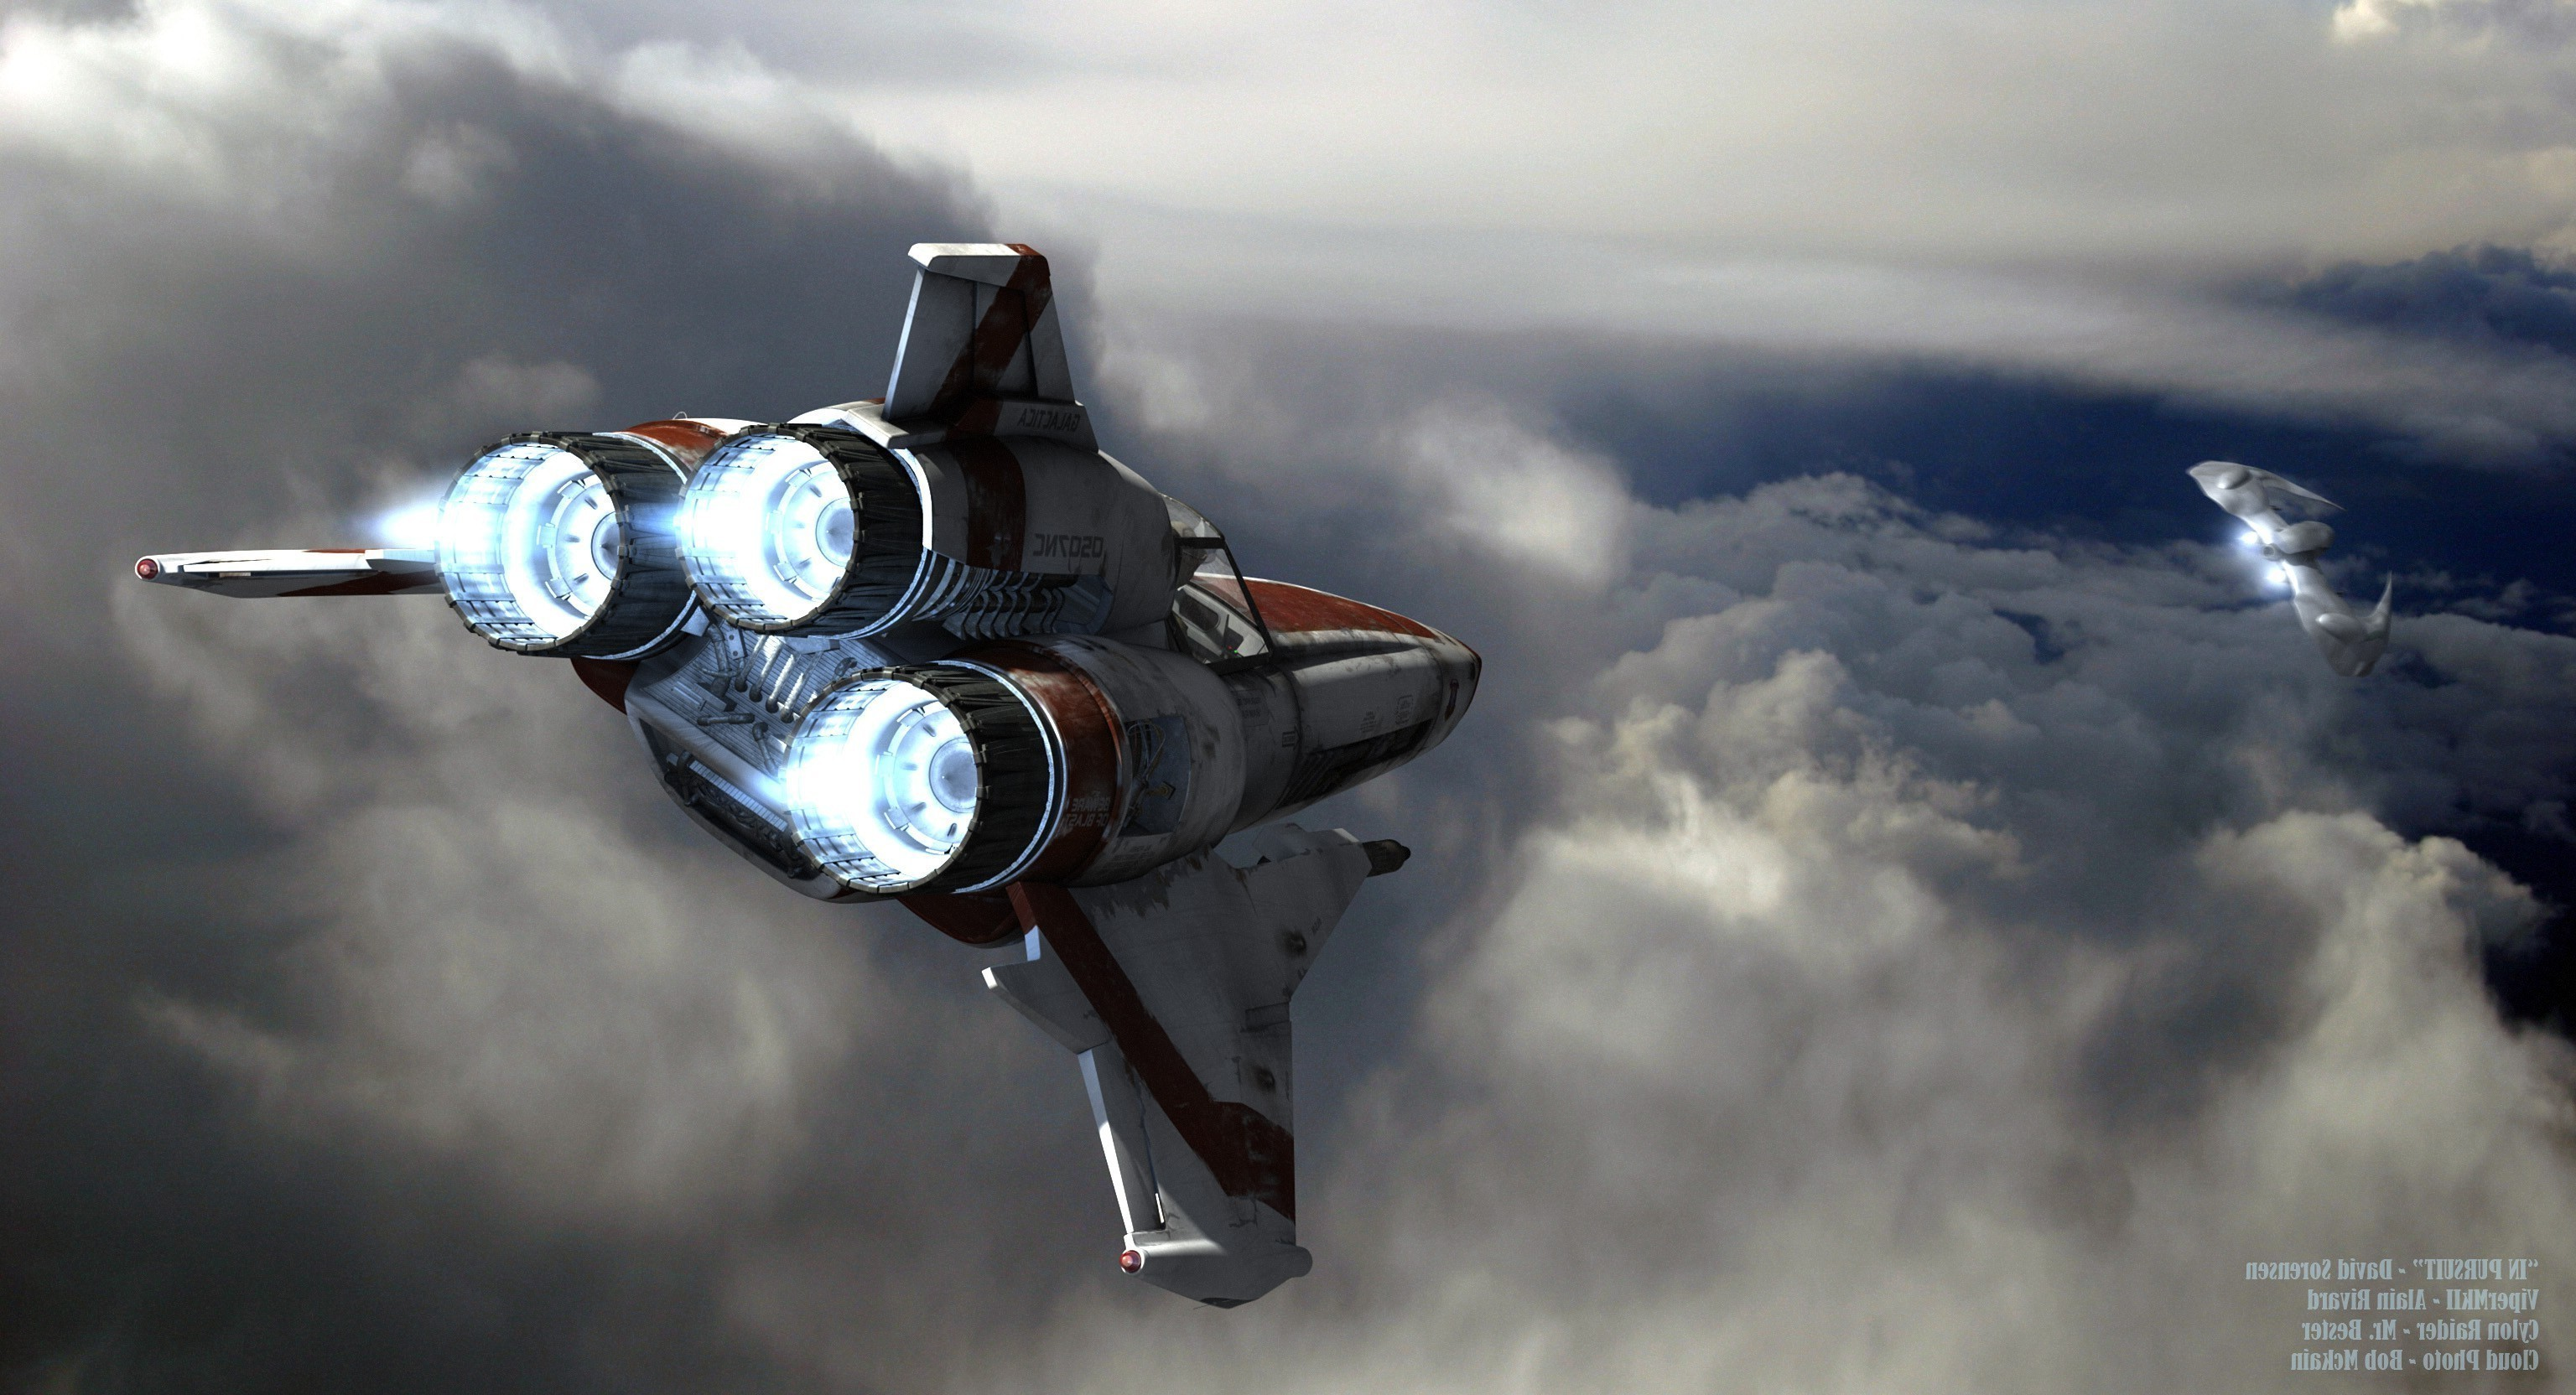 Free Download 66 Battlestar Galactica Wallpapers On Wallpaperplay 3072x1664 For Your Desktop Mobile Tablet Explore 65 Battlestar Galactica Wallpaper Battlestar Galactica Wallpapers And Screensavers Battlestar Galactica Wallpaper Images